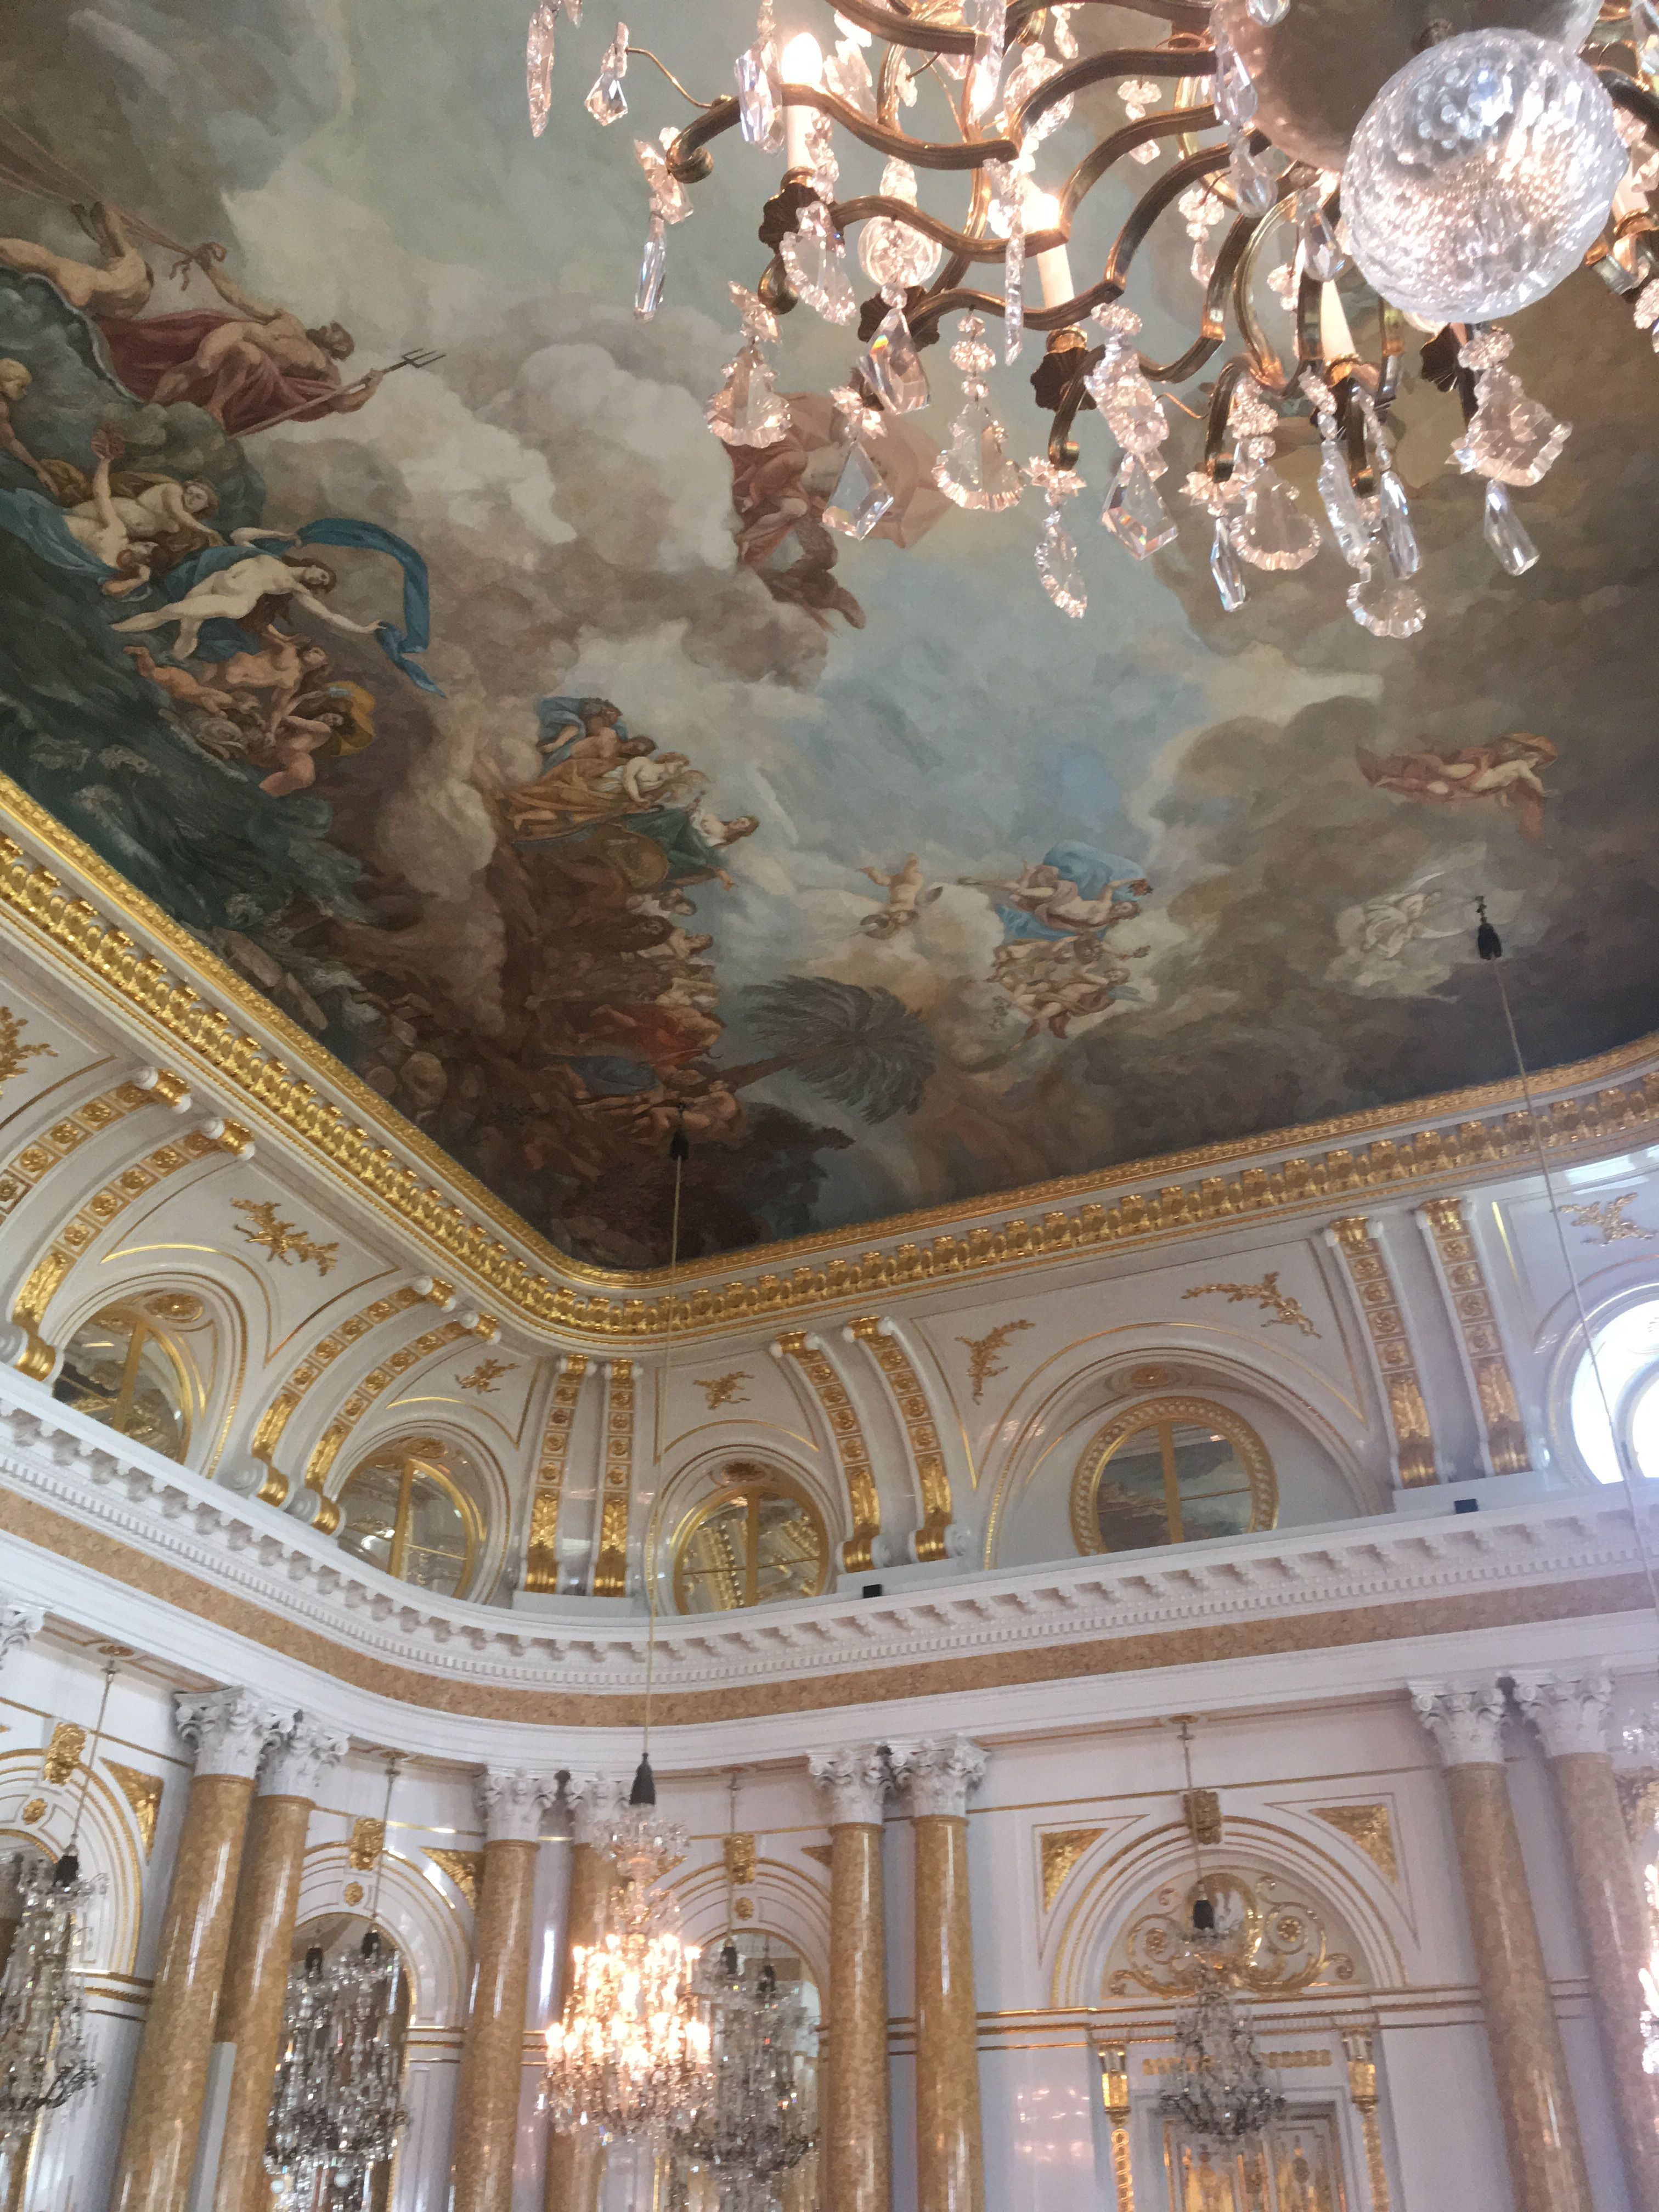 Pin By Sammy On Baroque Art In 2019 Art Architecture